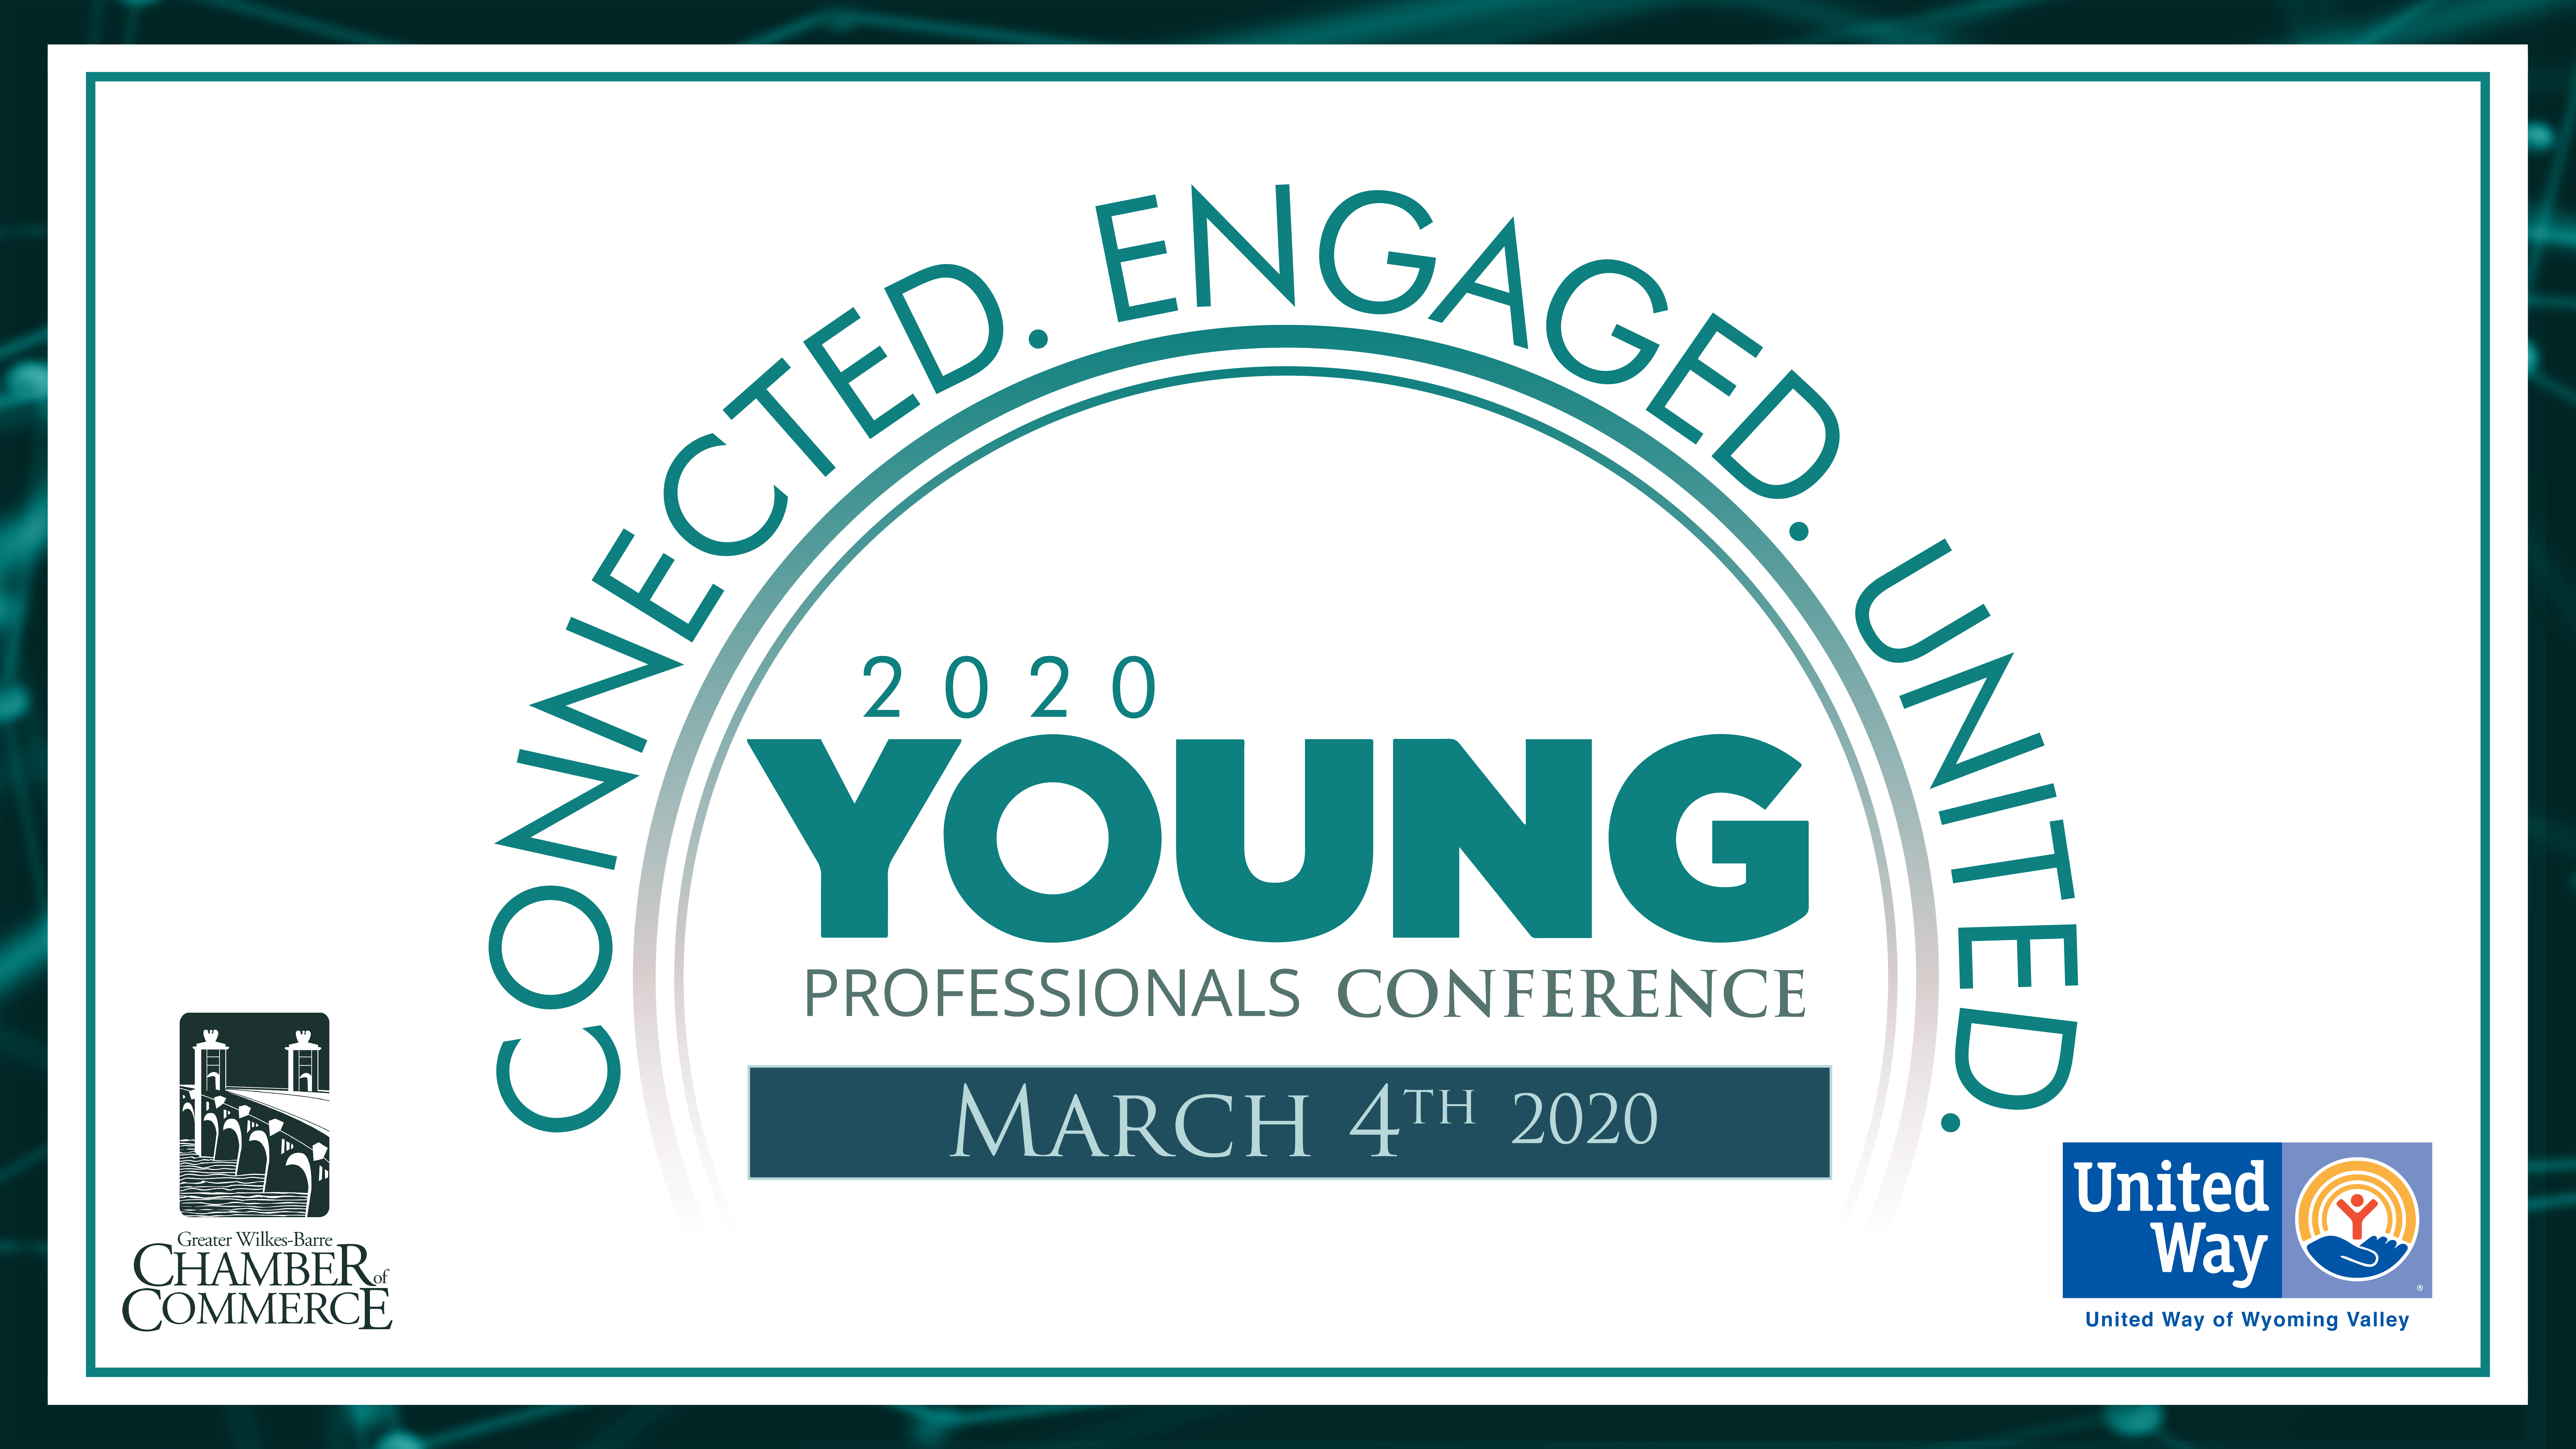 2020 Young Professionals Conference Keynote Announcement